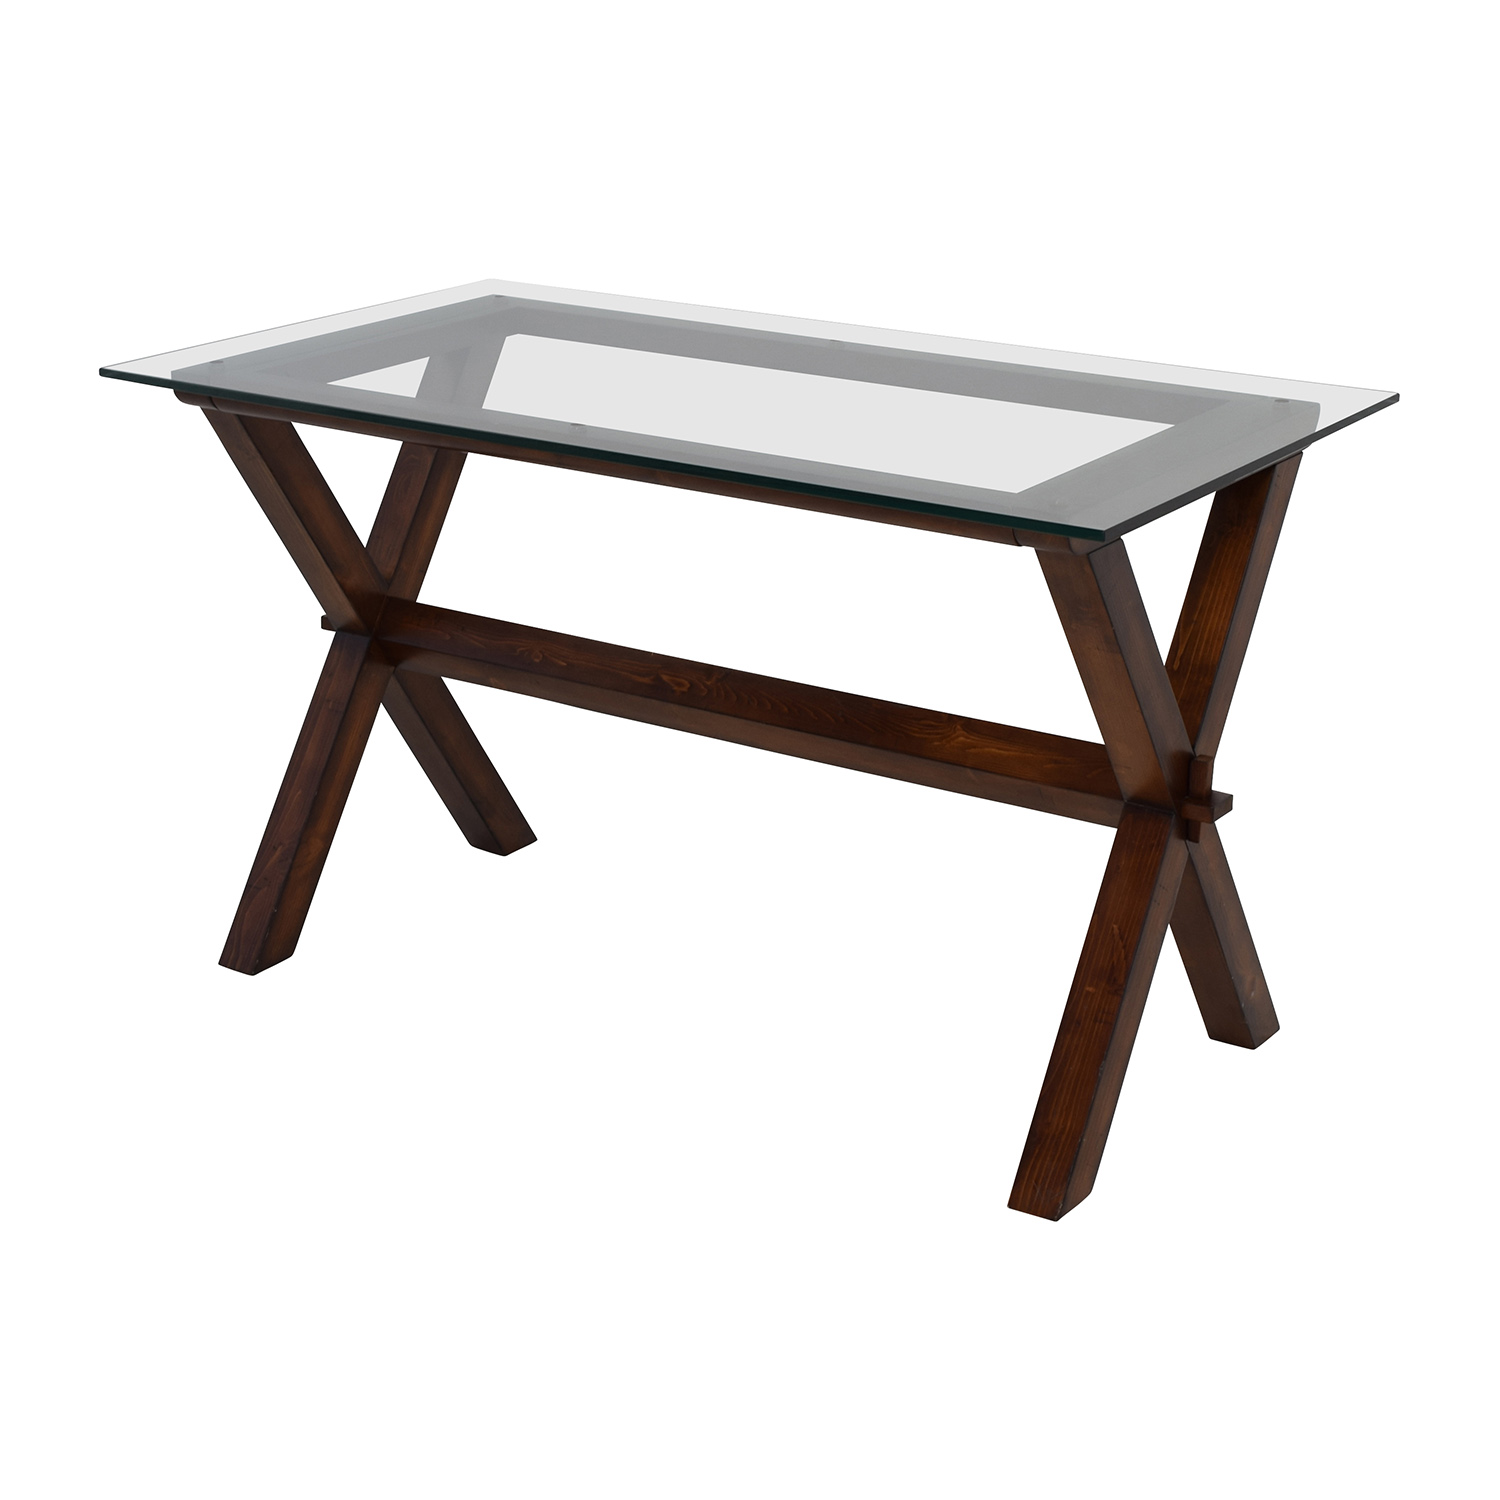 64% OFF Pottery Barn Pottery Barn Ava Glass and Wood Desk Tables